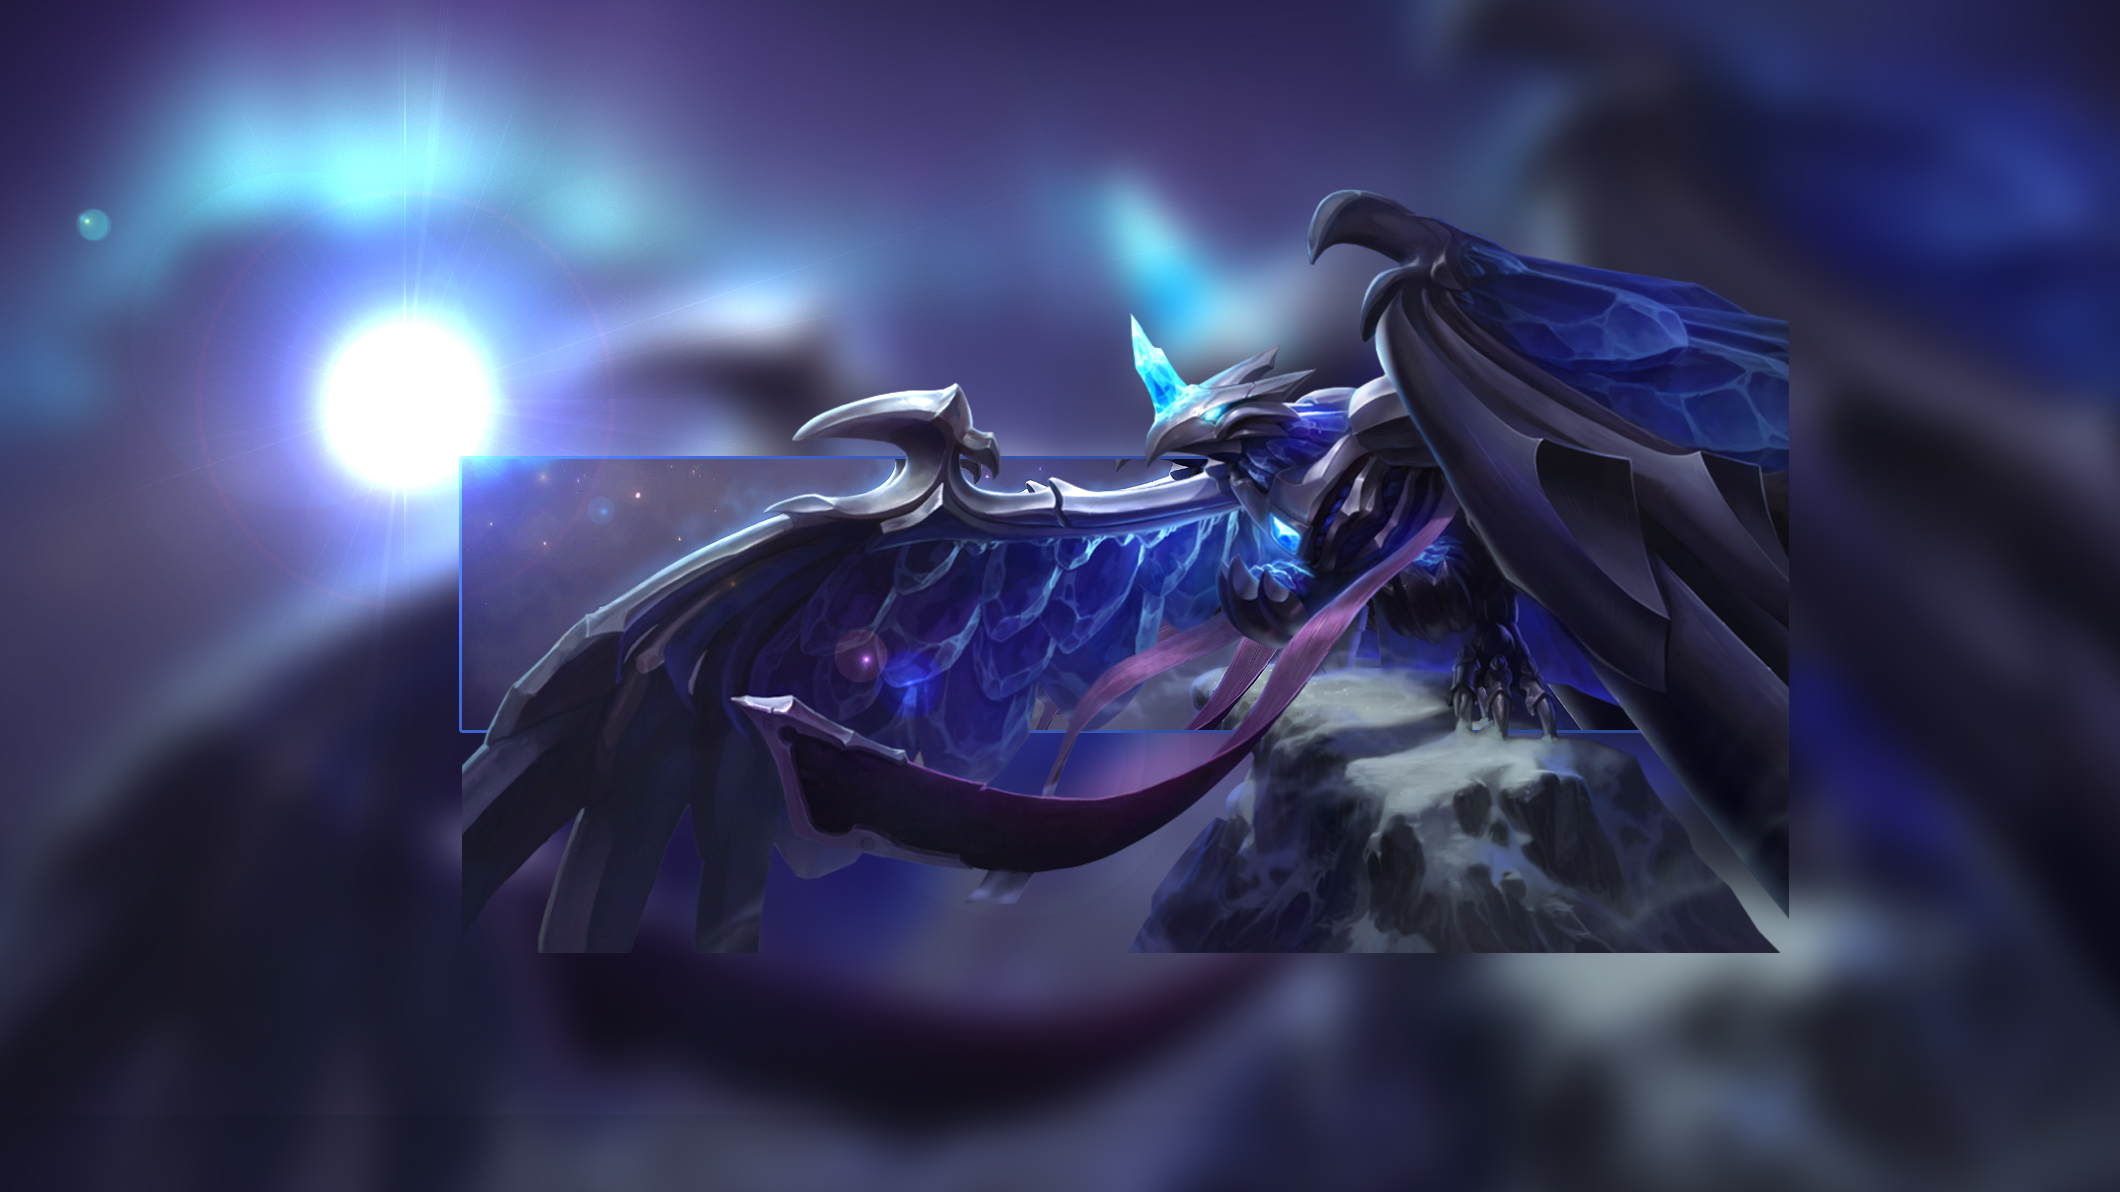 blackfrost anivia ingame - photo #18